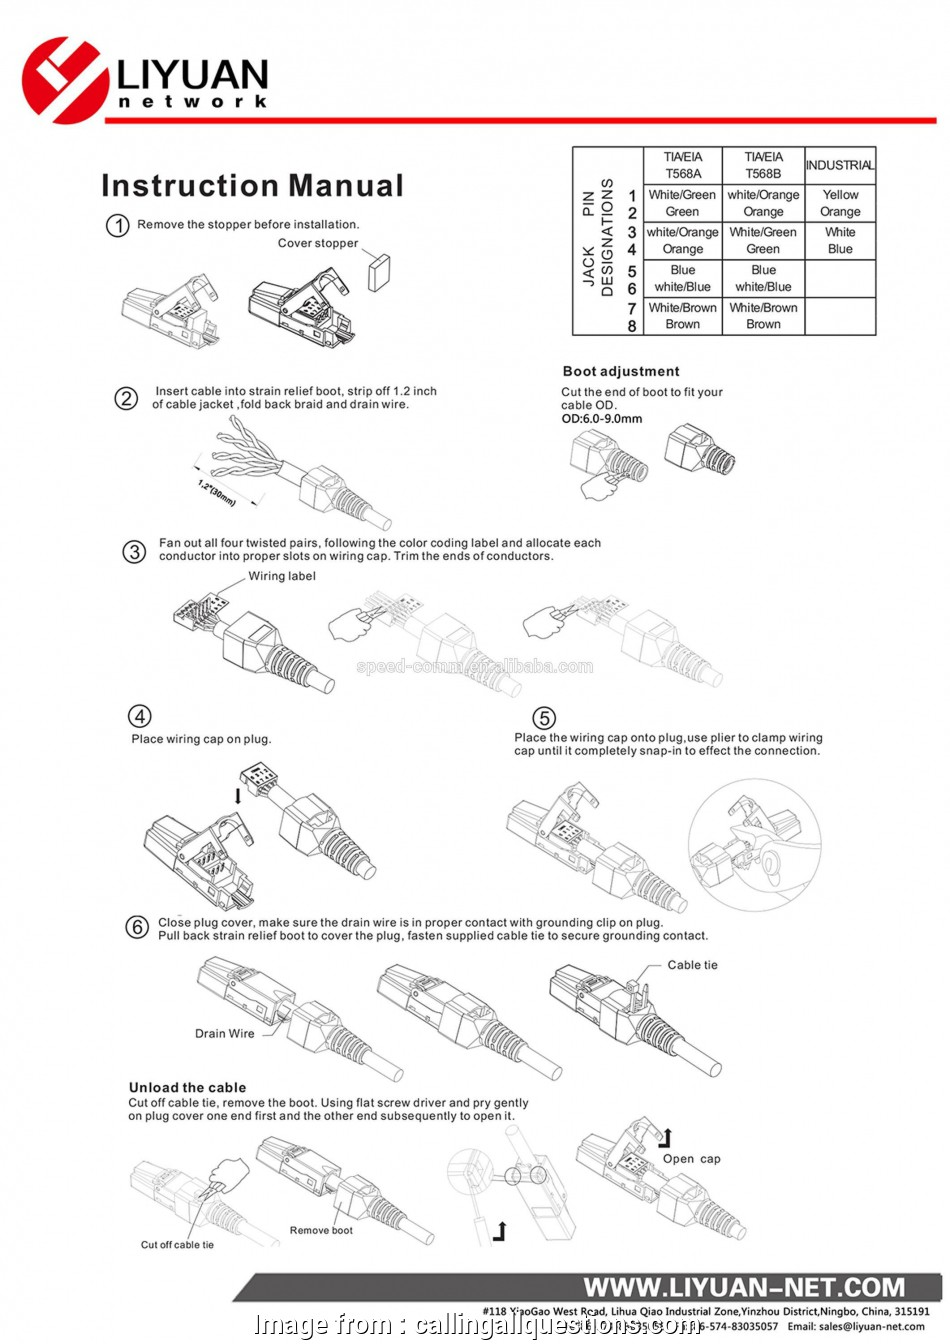 Rs485 To Rj45 Wiring Diagram Practical Rs485 Wiring